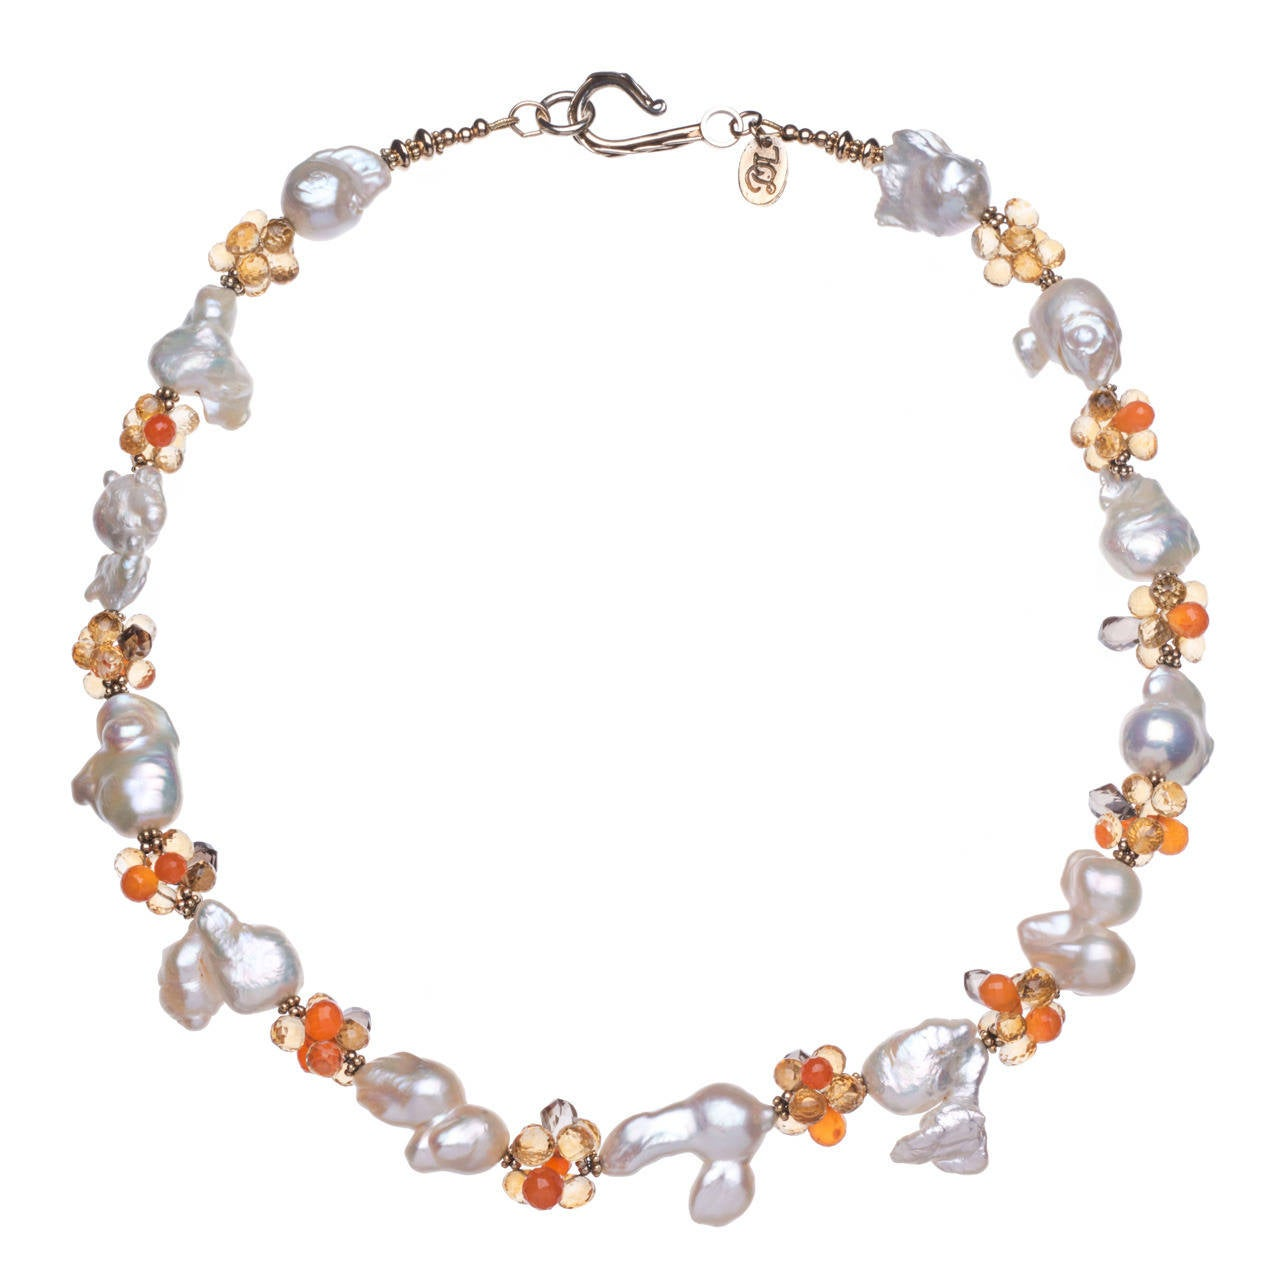 Deborah Liebman White Pearl Citrine Carnelian Smoky Quartz Gold Vermeil Necklace